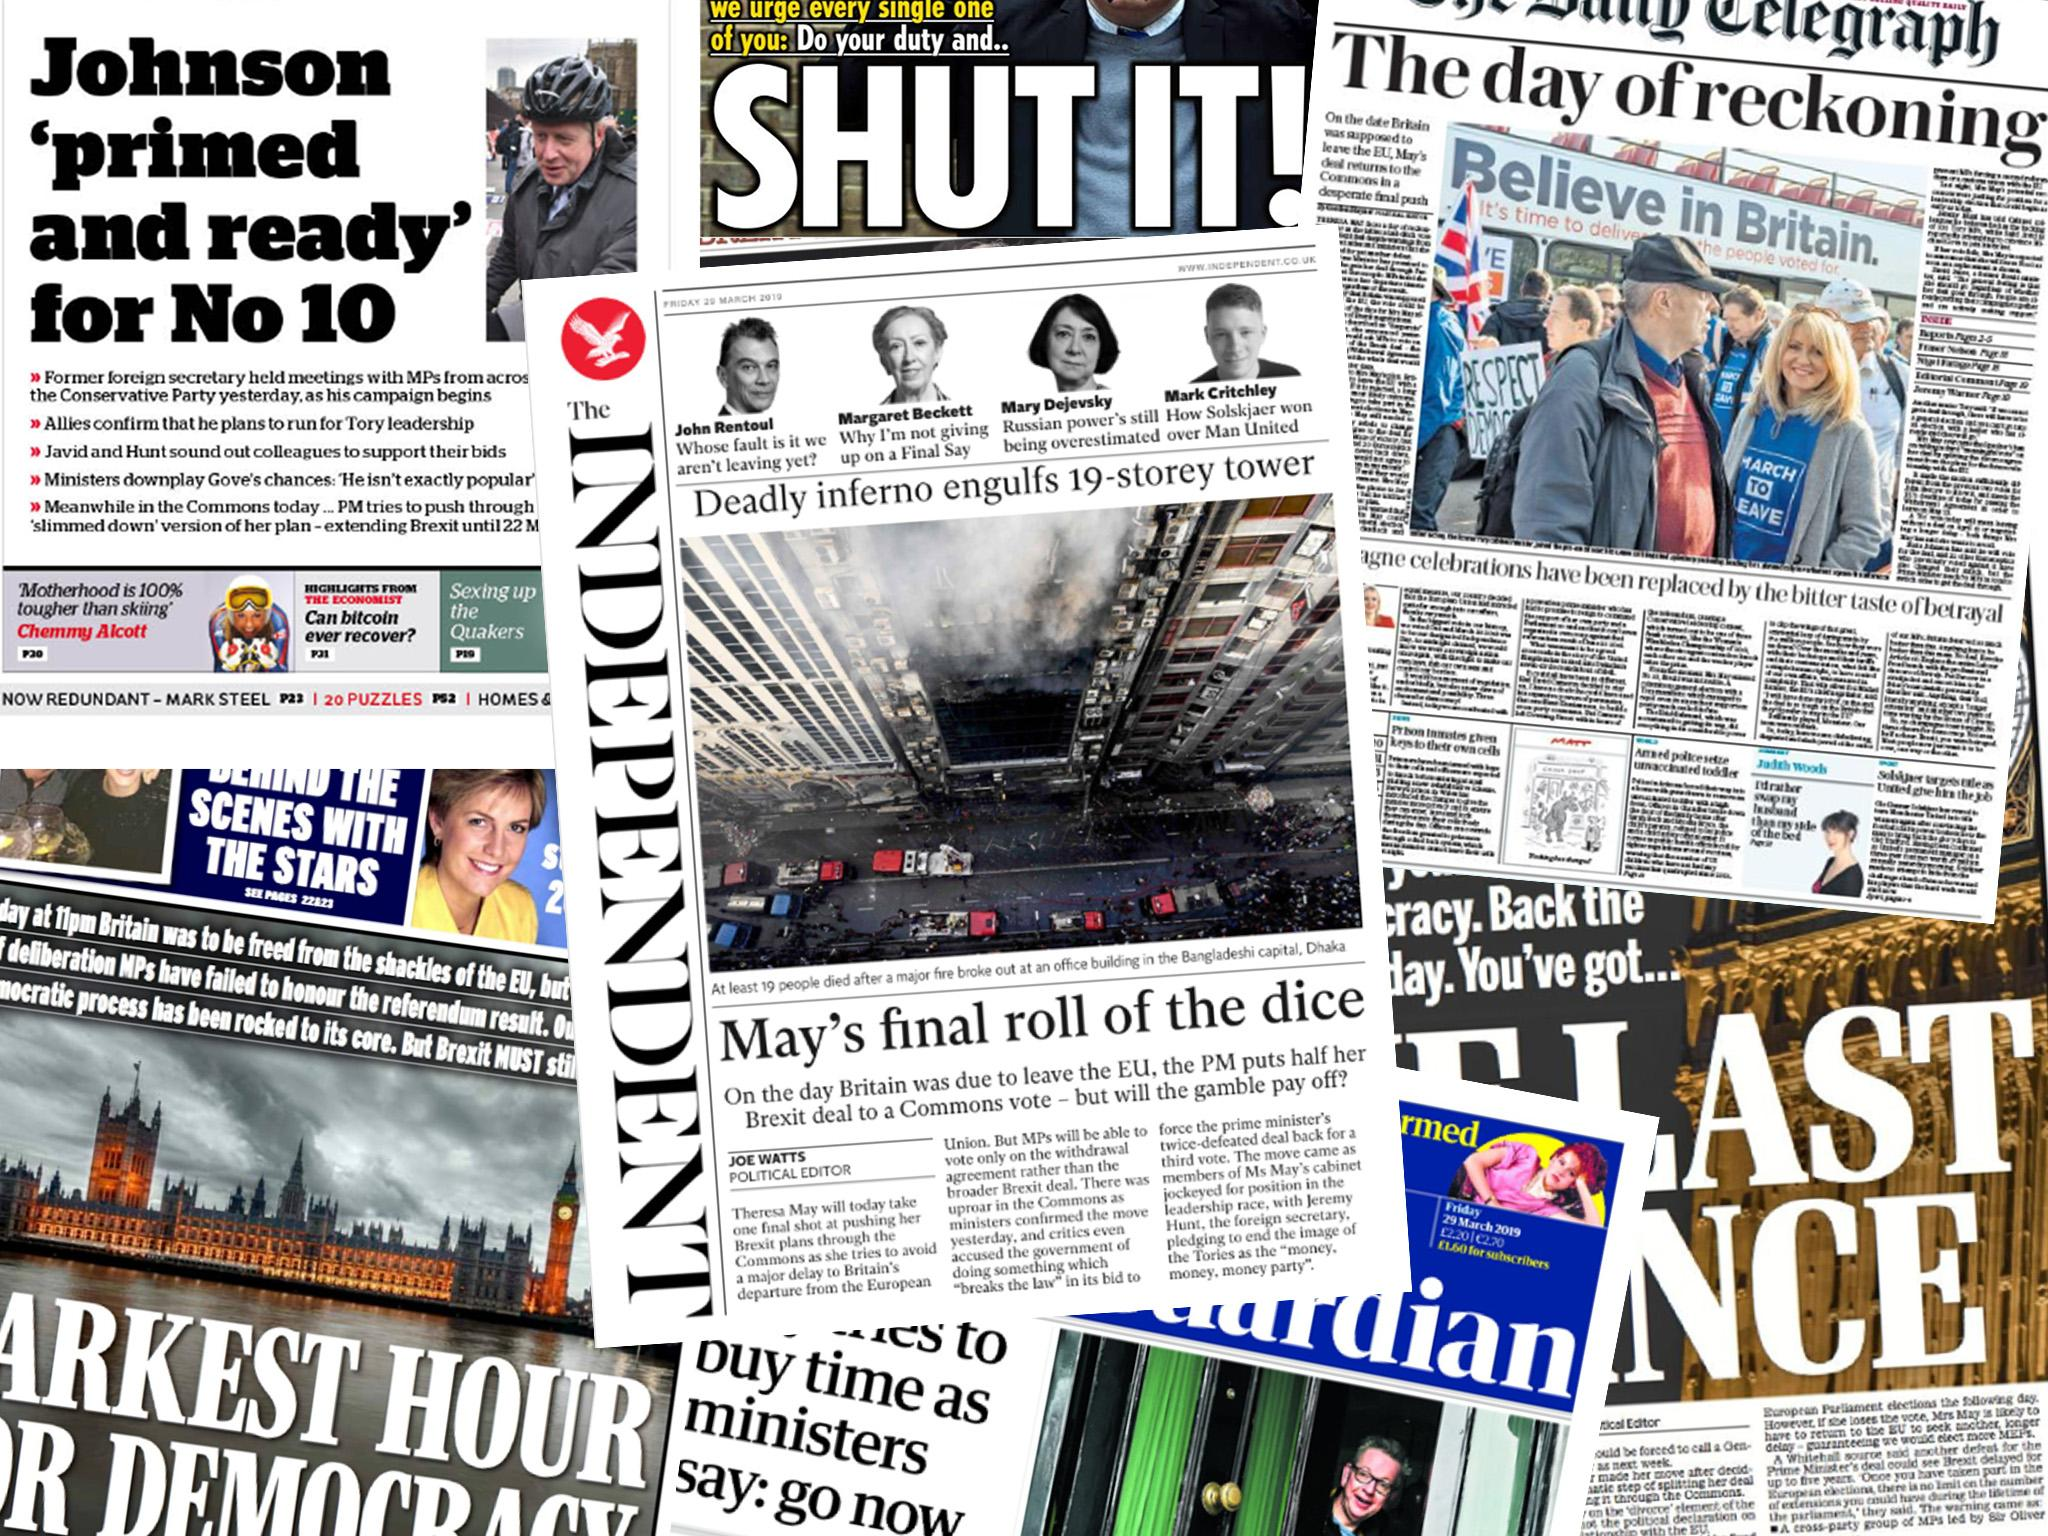 Leave EU's latest scandal shows digital propaganda is out of